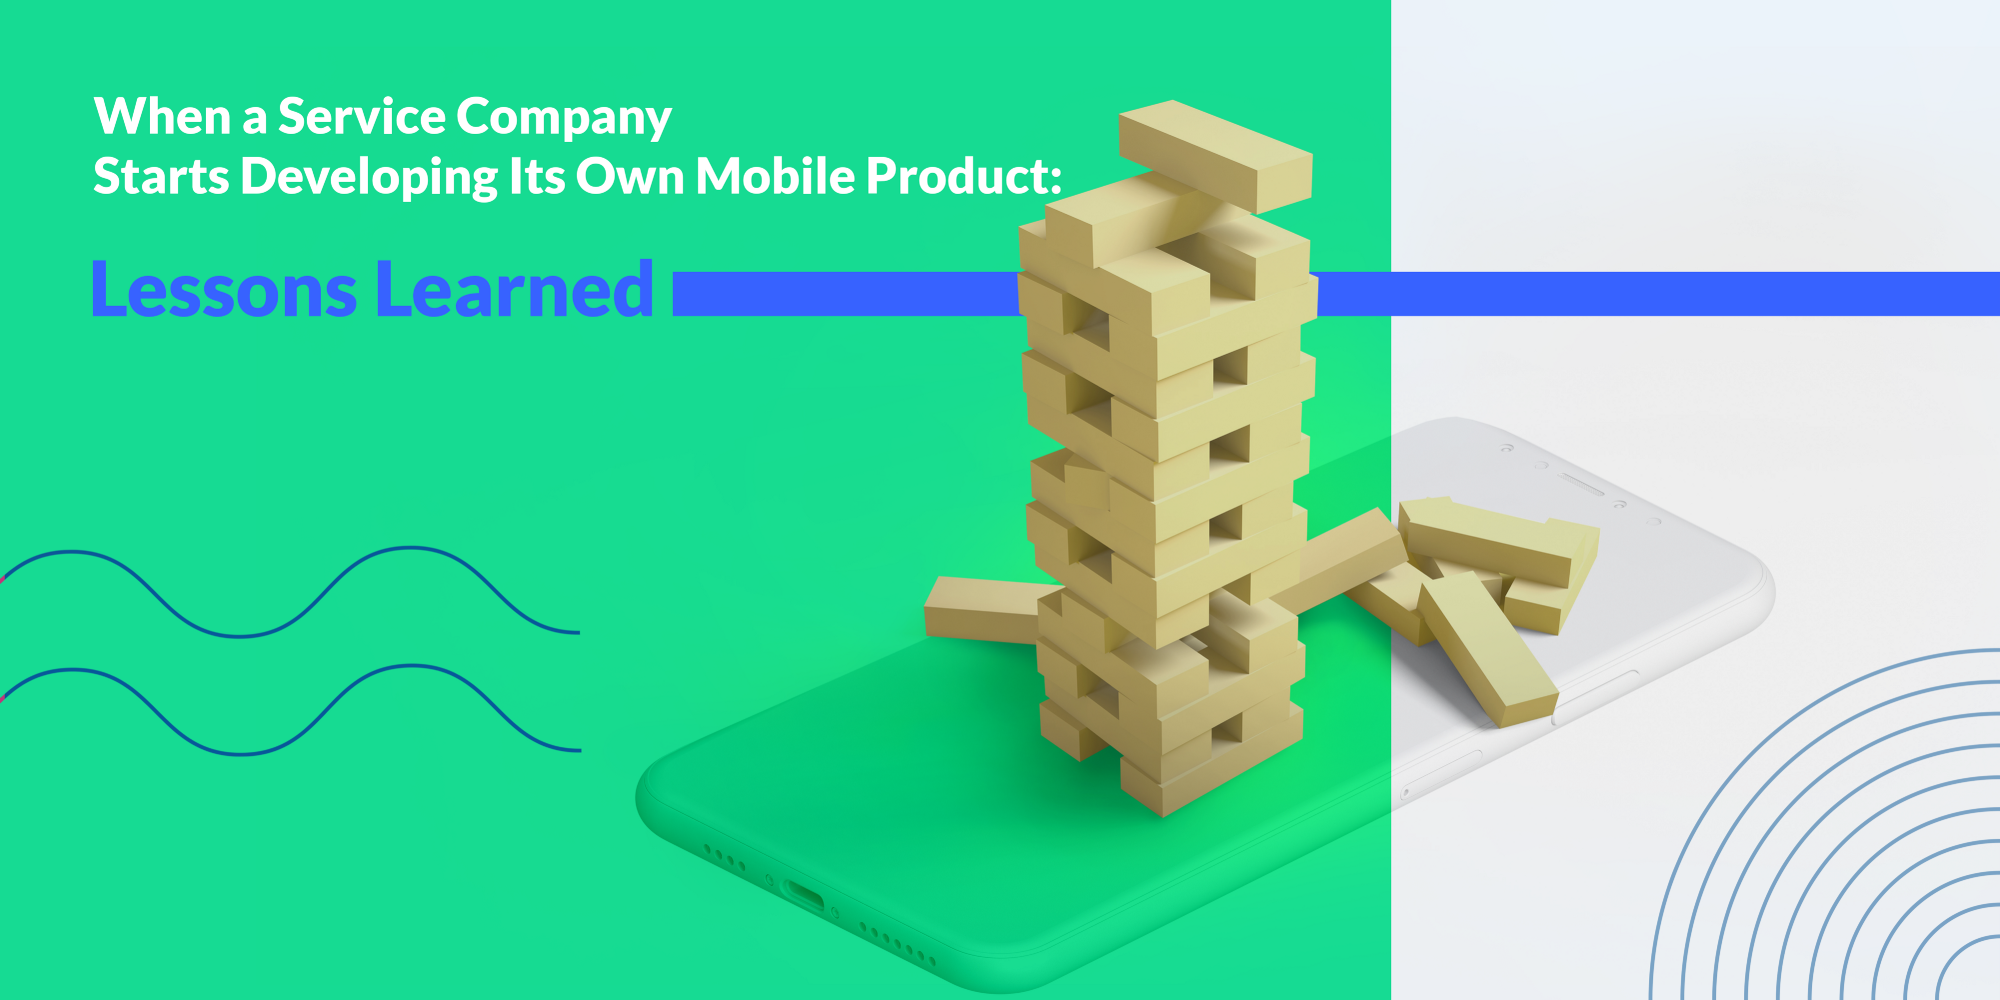 When a Service Company Starts Developing Its Own Mobile Product: Lessons Learned